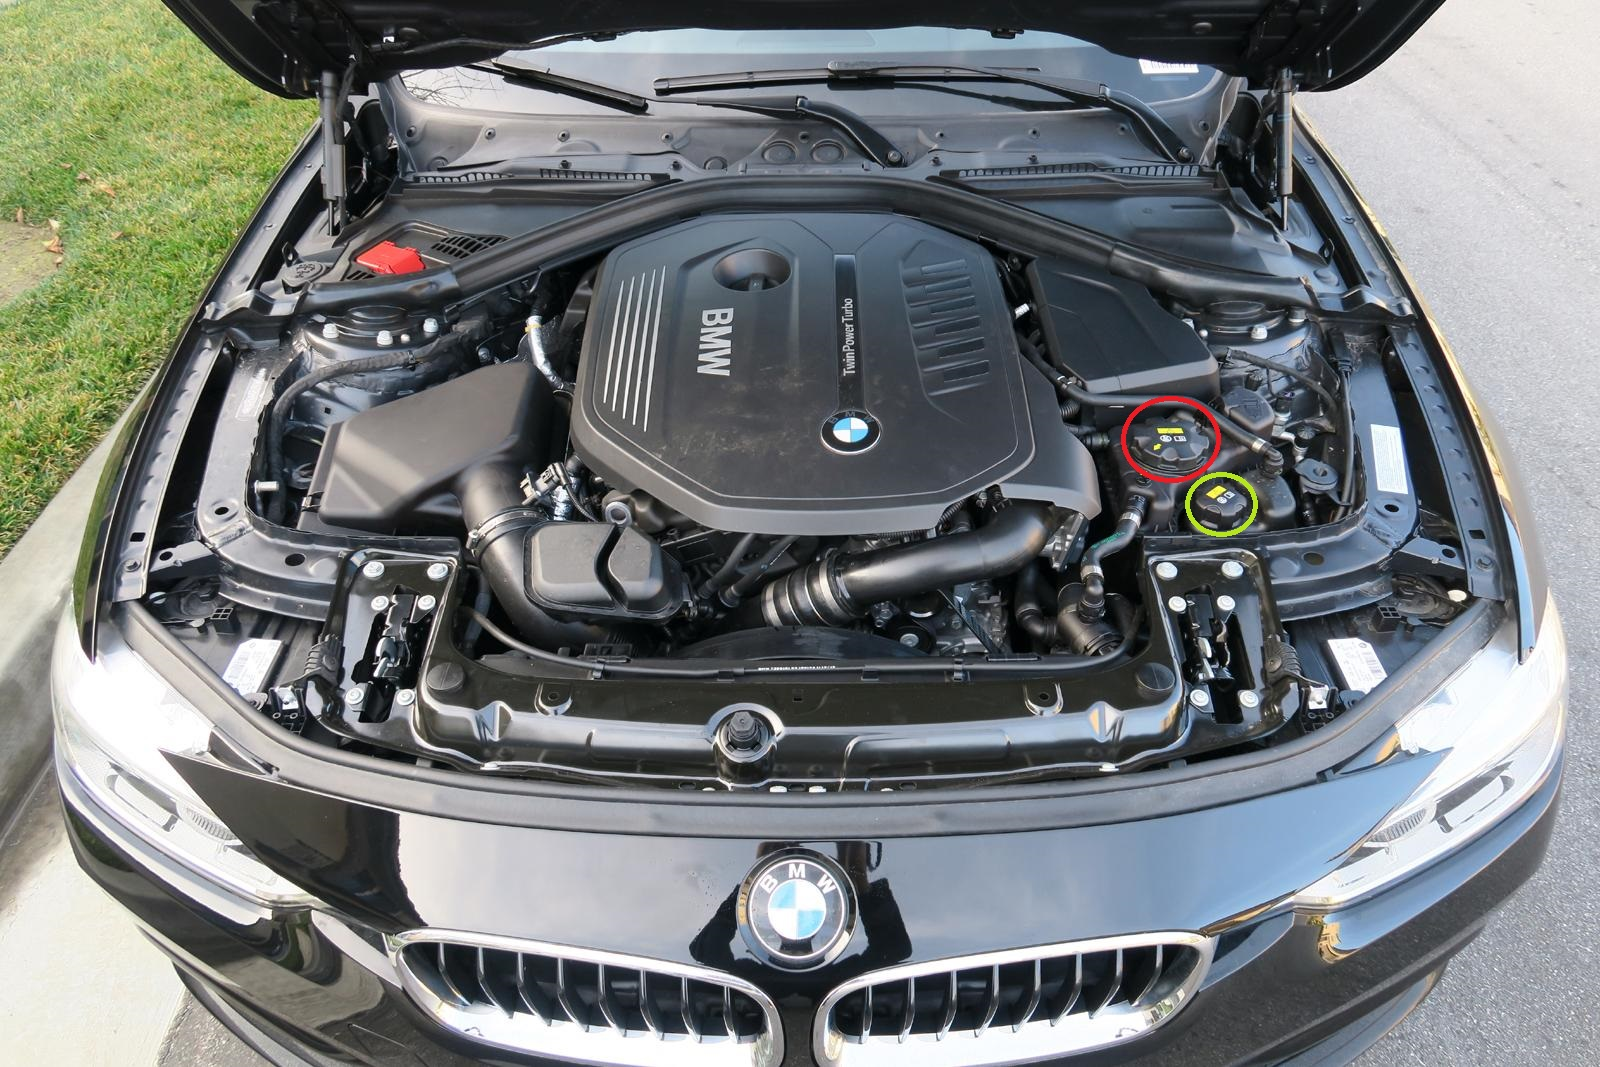 E39 Engine Diagram Oil Trusted Wiring Diagrams 1997 Bmw 528i Additionally O2 Sensor Coolant Resevoir In B58 340i Vacuum